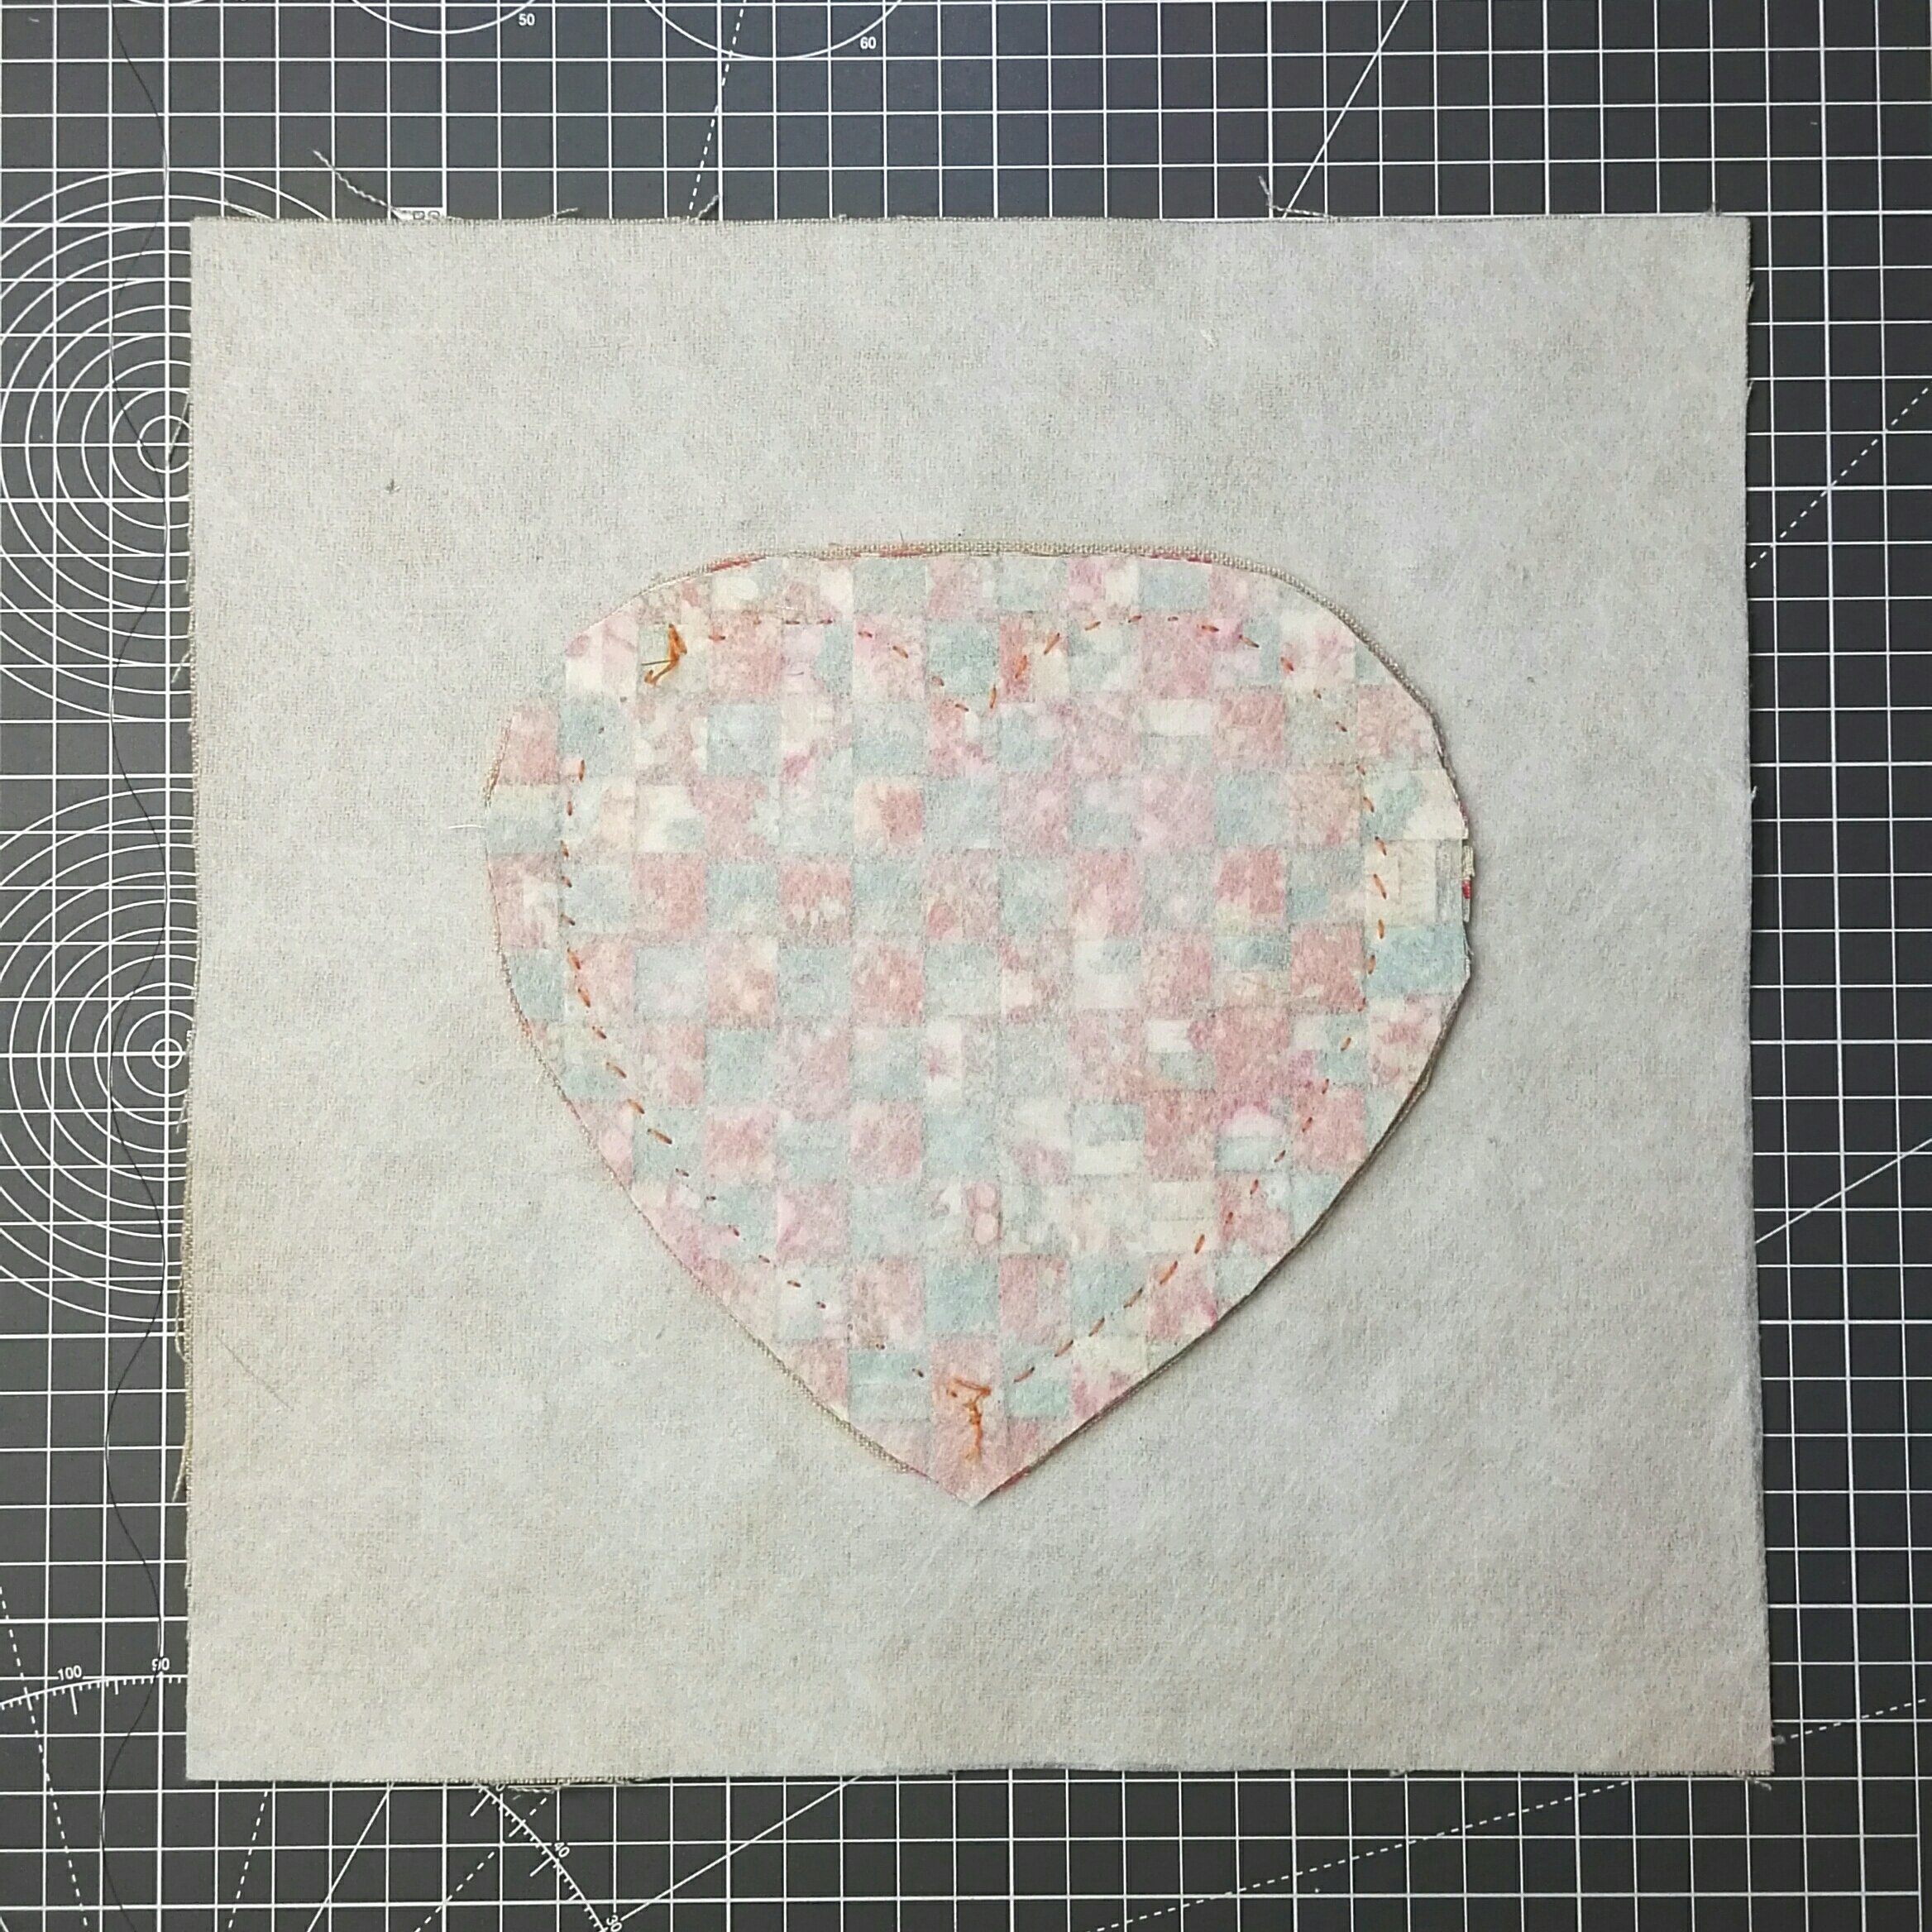 trim the back of the heart